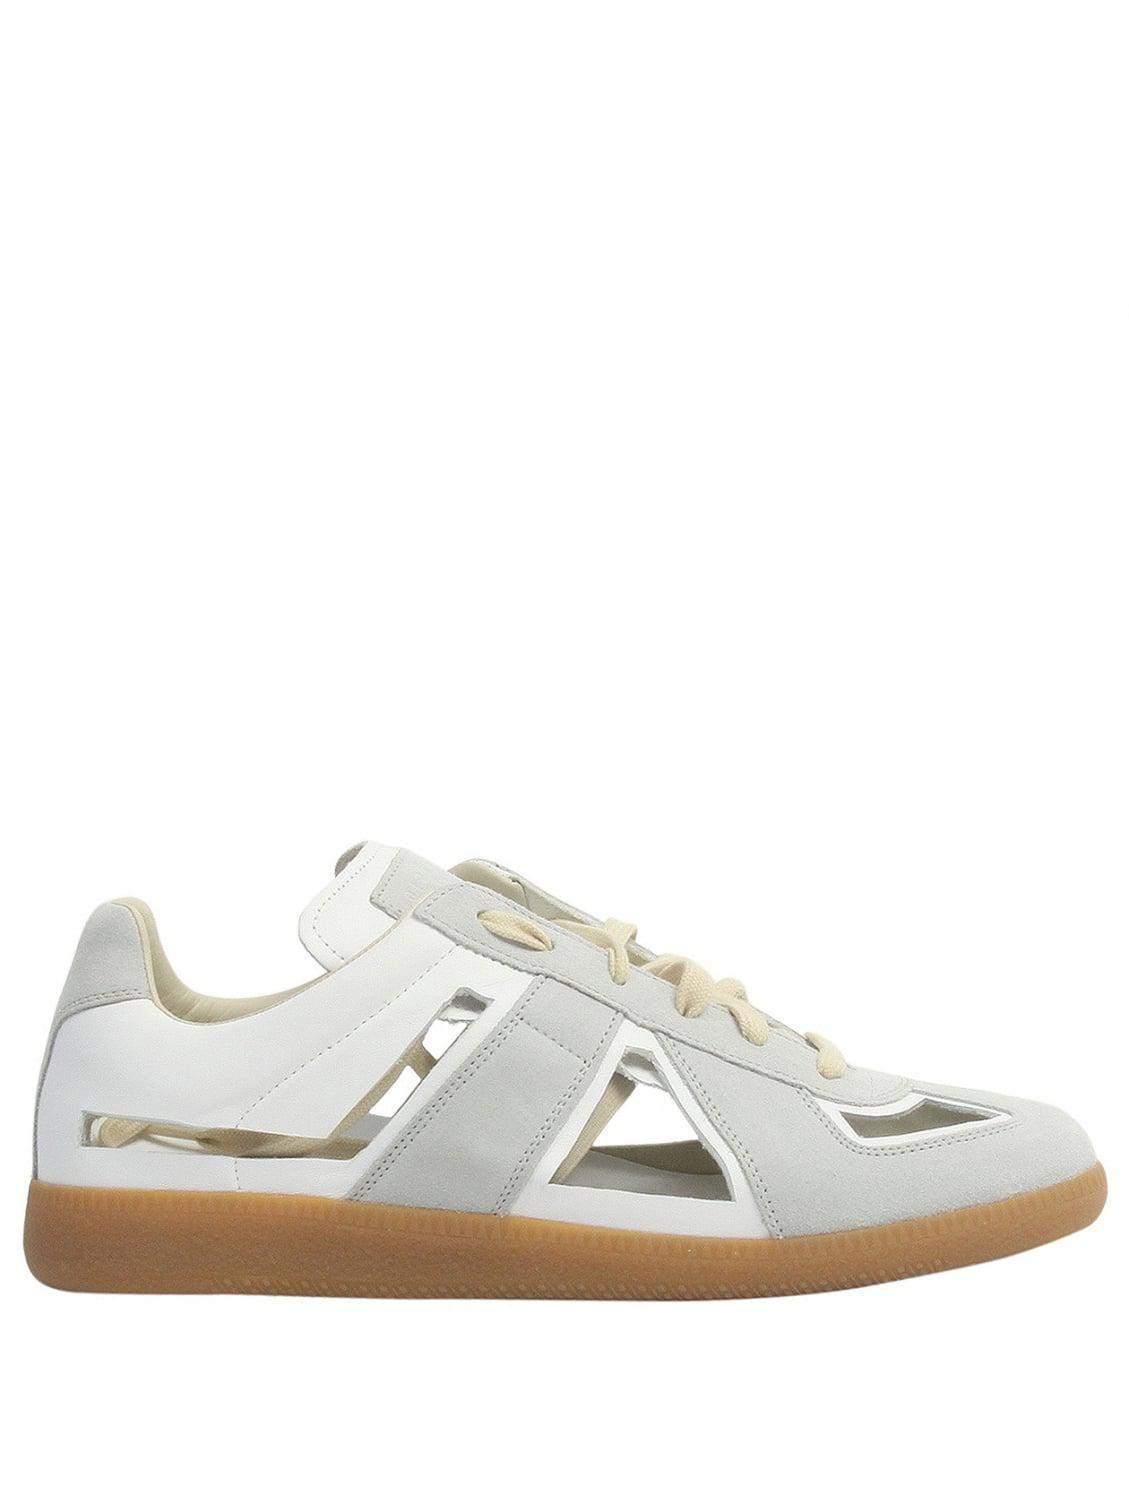 cut out panel sneakers - White Maison Martin Margiela C1XgoFn